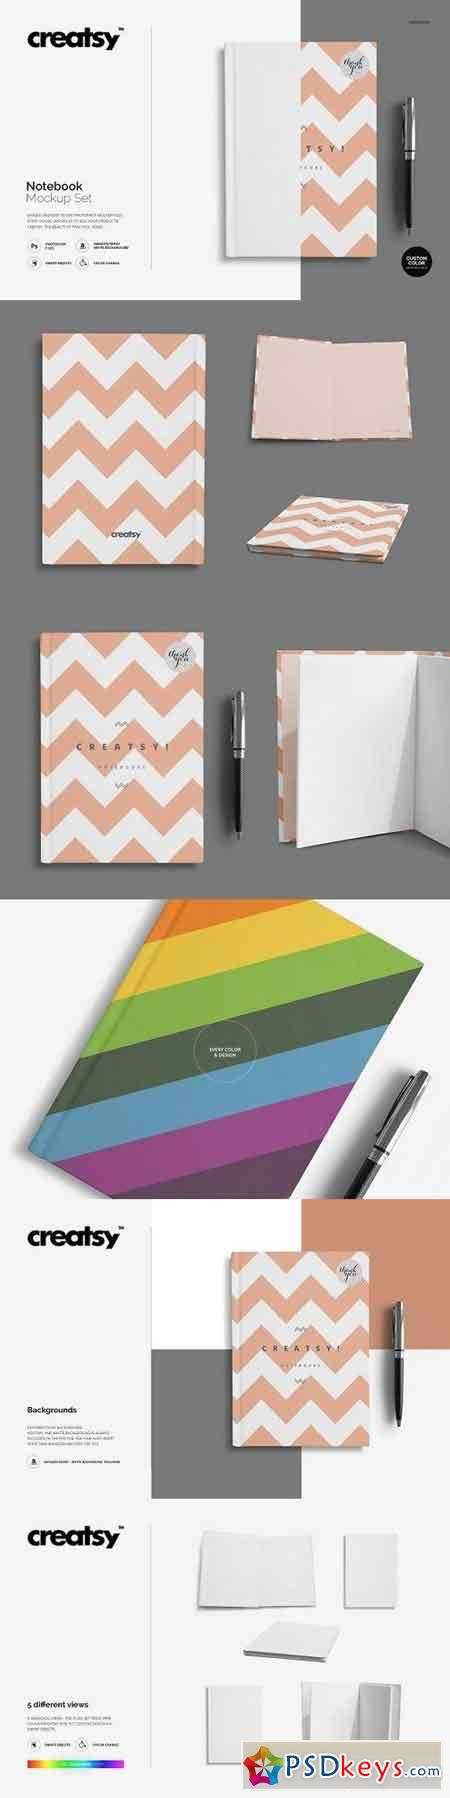 Notebook Mockup Set 1286533